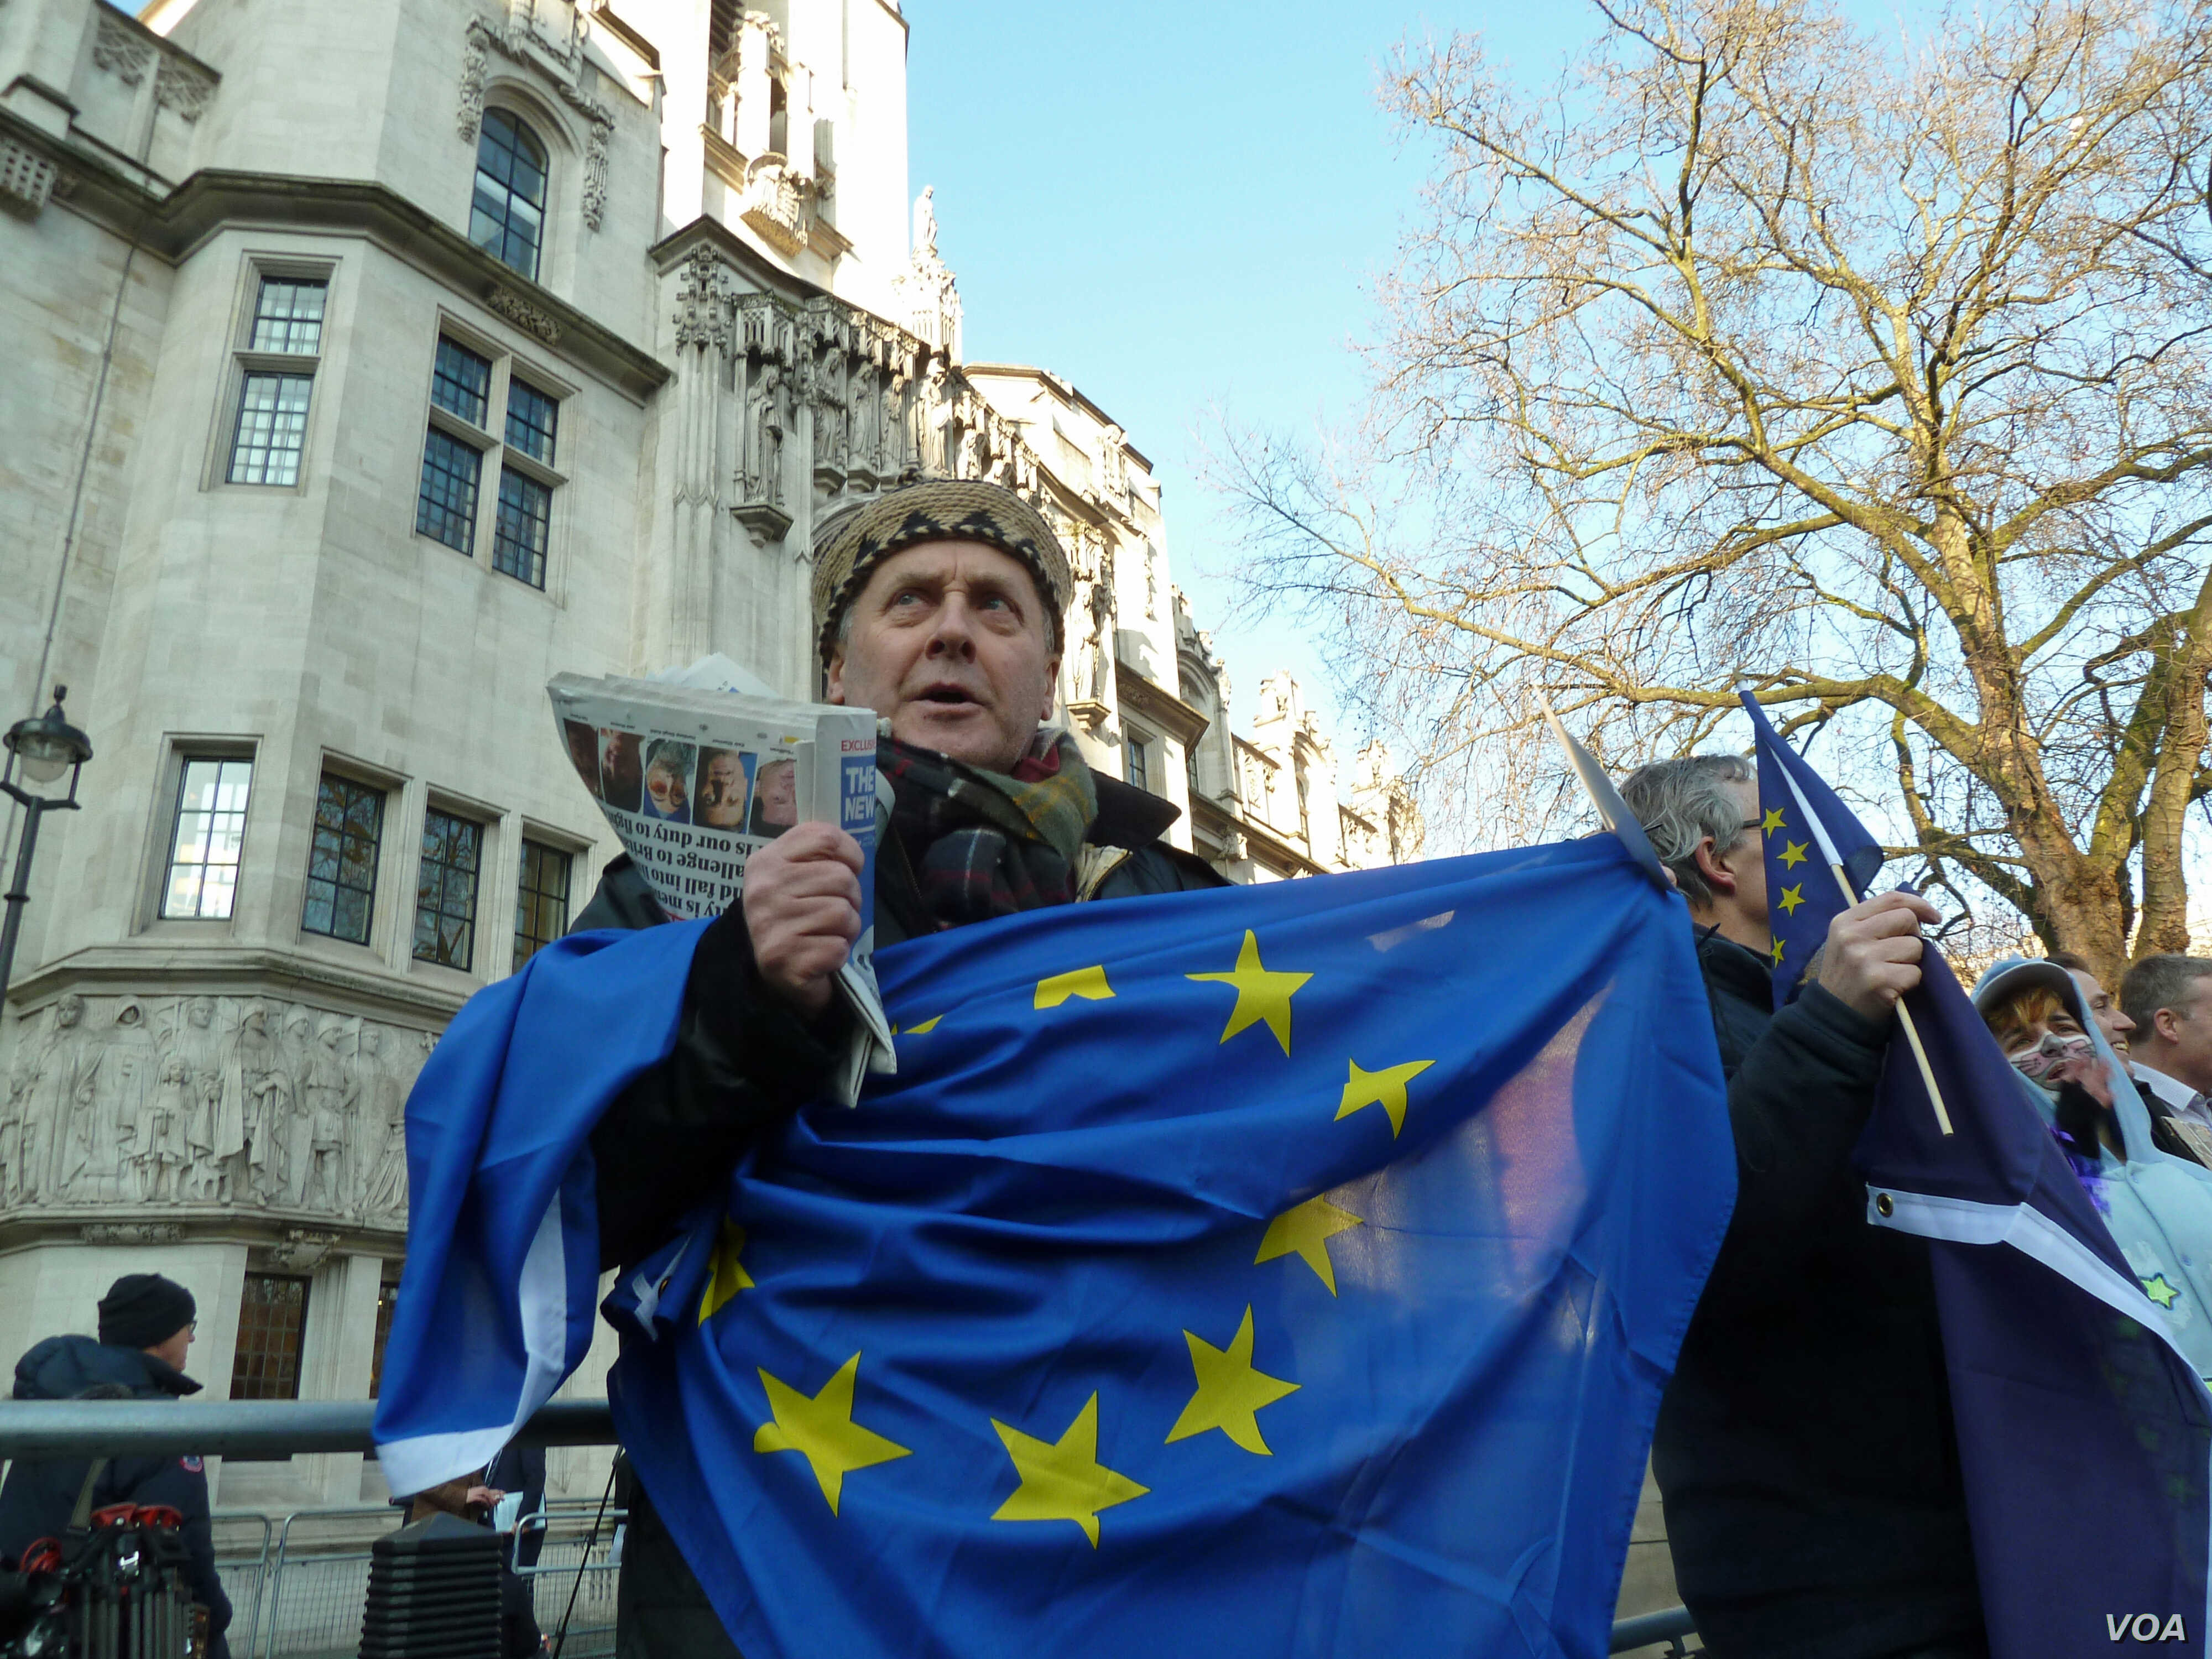 """Kirker Anti-Brexit demonstrator Richard Kirker says """"Our prime minister thought, shamefully, that she had a mandate to impose on parliament and to use her conservative majority to take us out of Europe."""" (J. Godman/VOA)"""